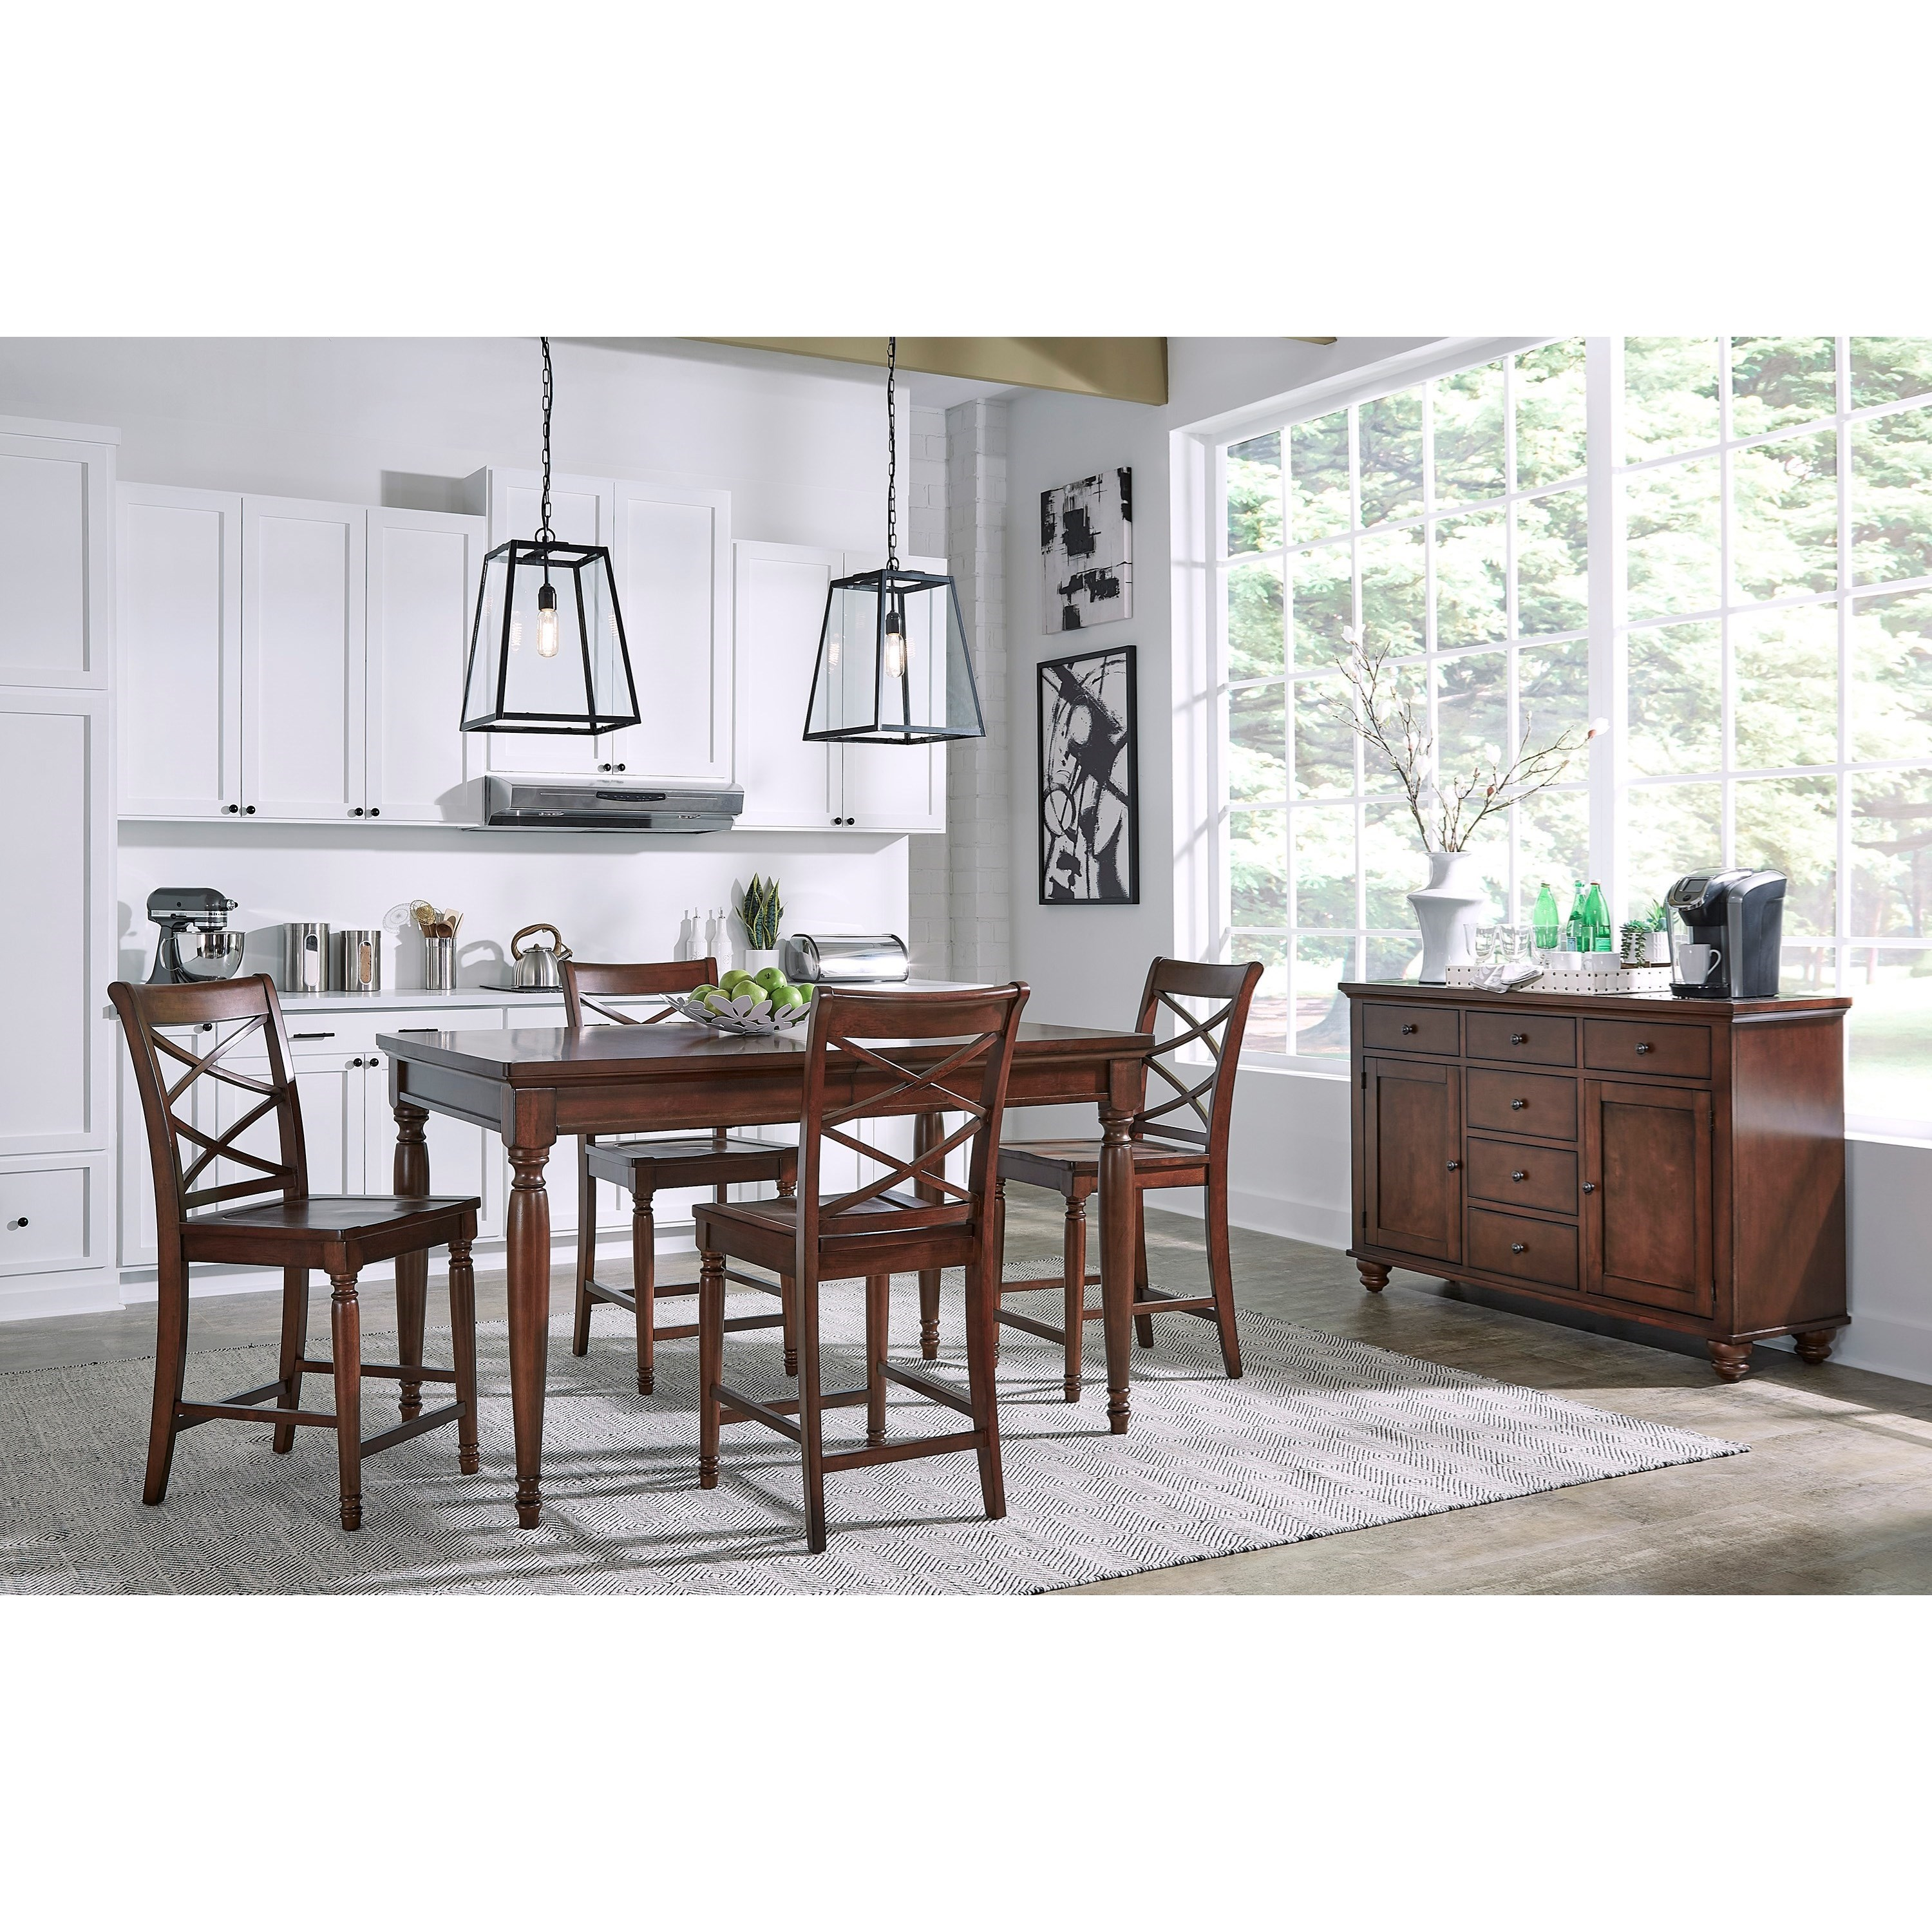 Merveilleux Aspenhome Cambridge5 Pc. Pub Table Set ...